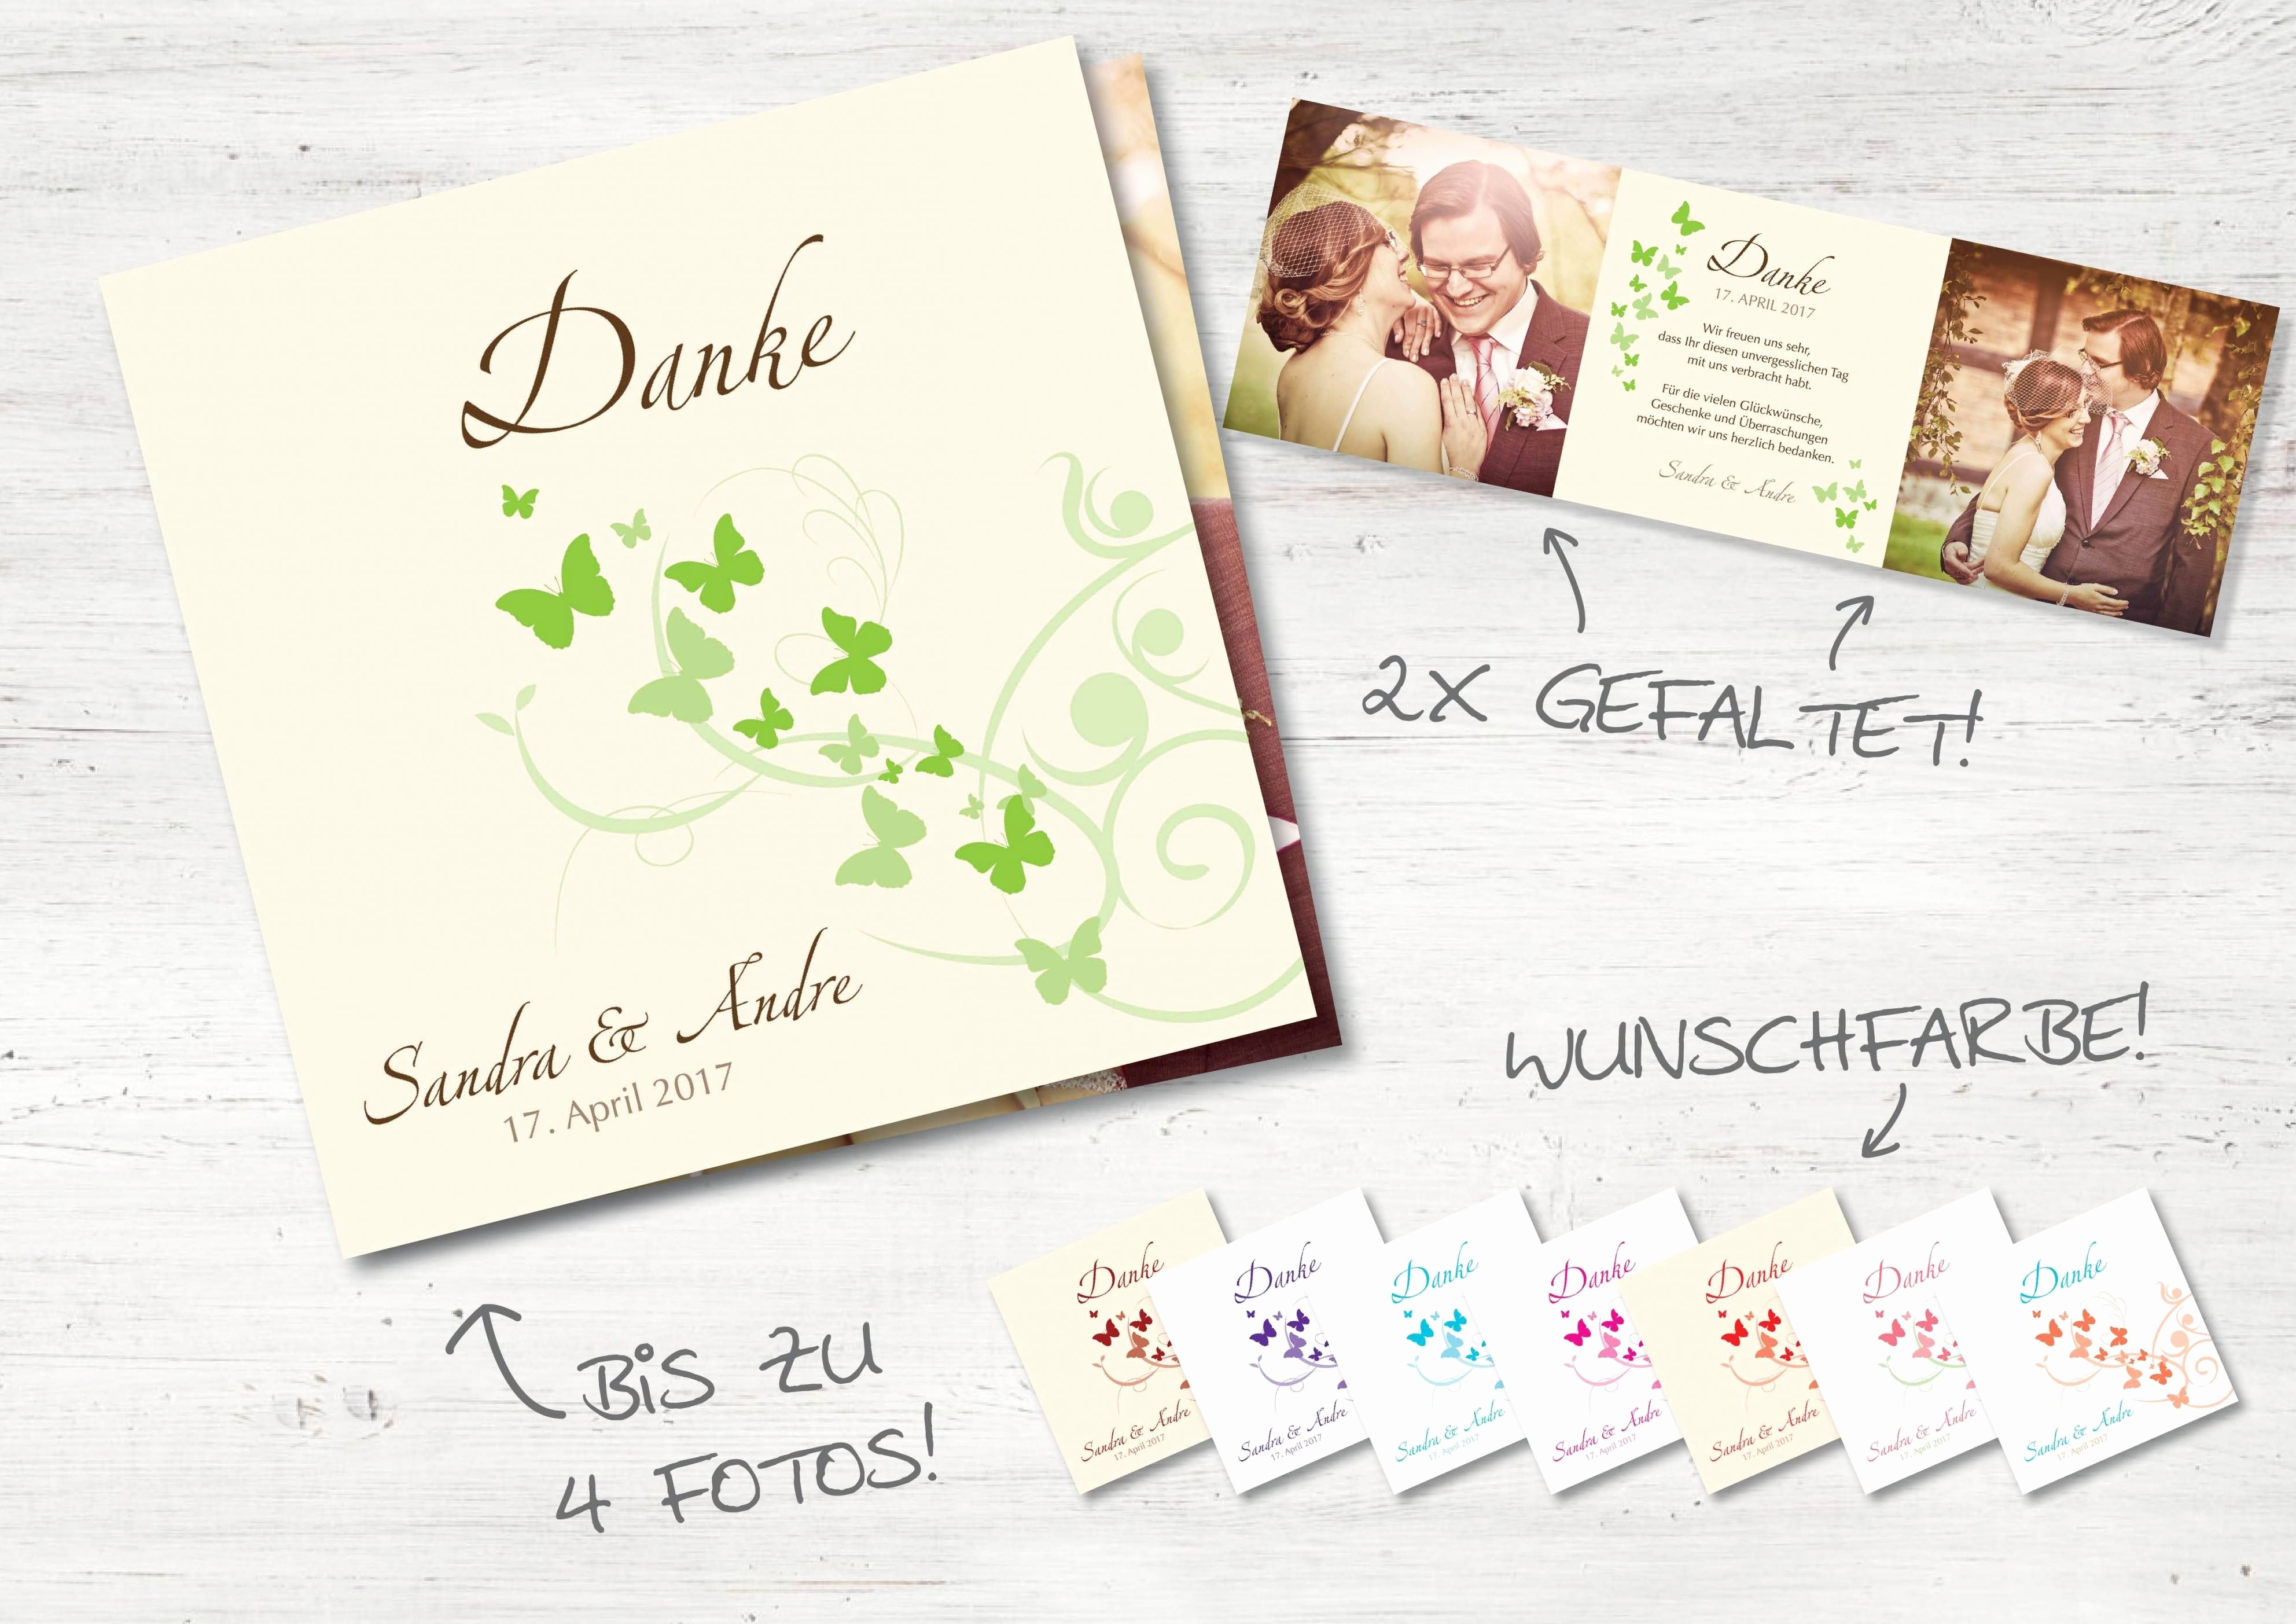 Hochzeit Dankeskarten Text Inspirierend Relatively Text Tr84 – Documentaries for Change